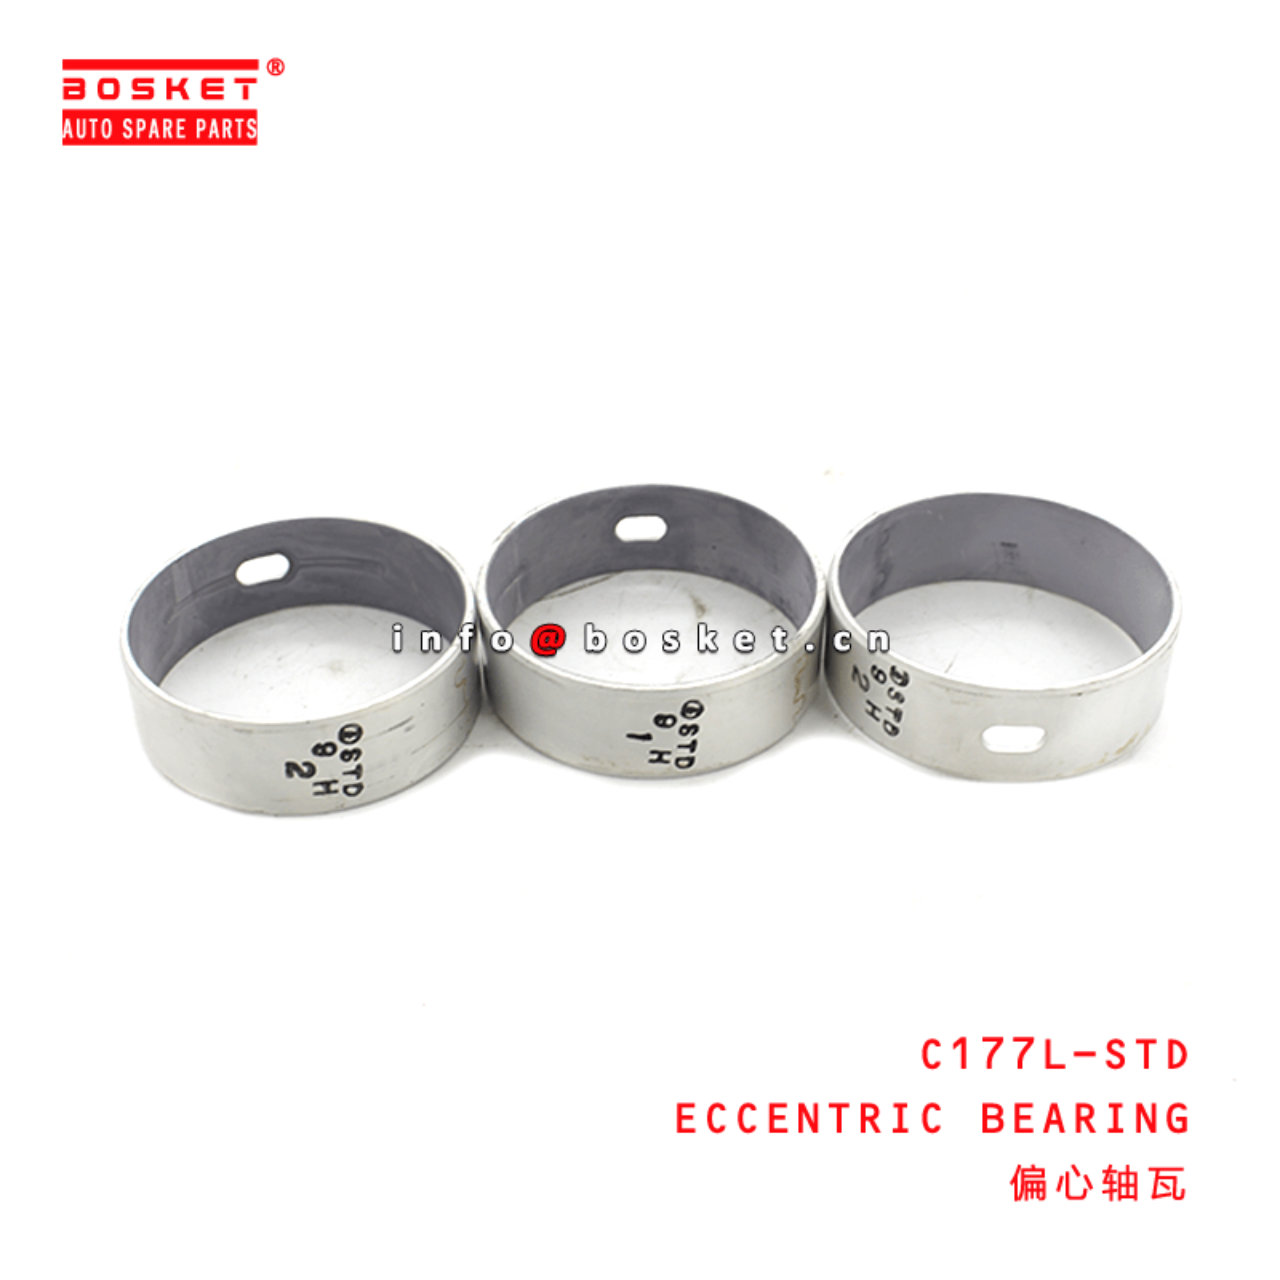 C177L-STD Eccentric Bearing Suitable for ISUZU 4BA1